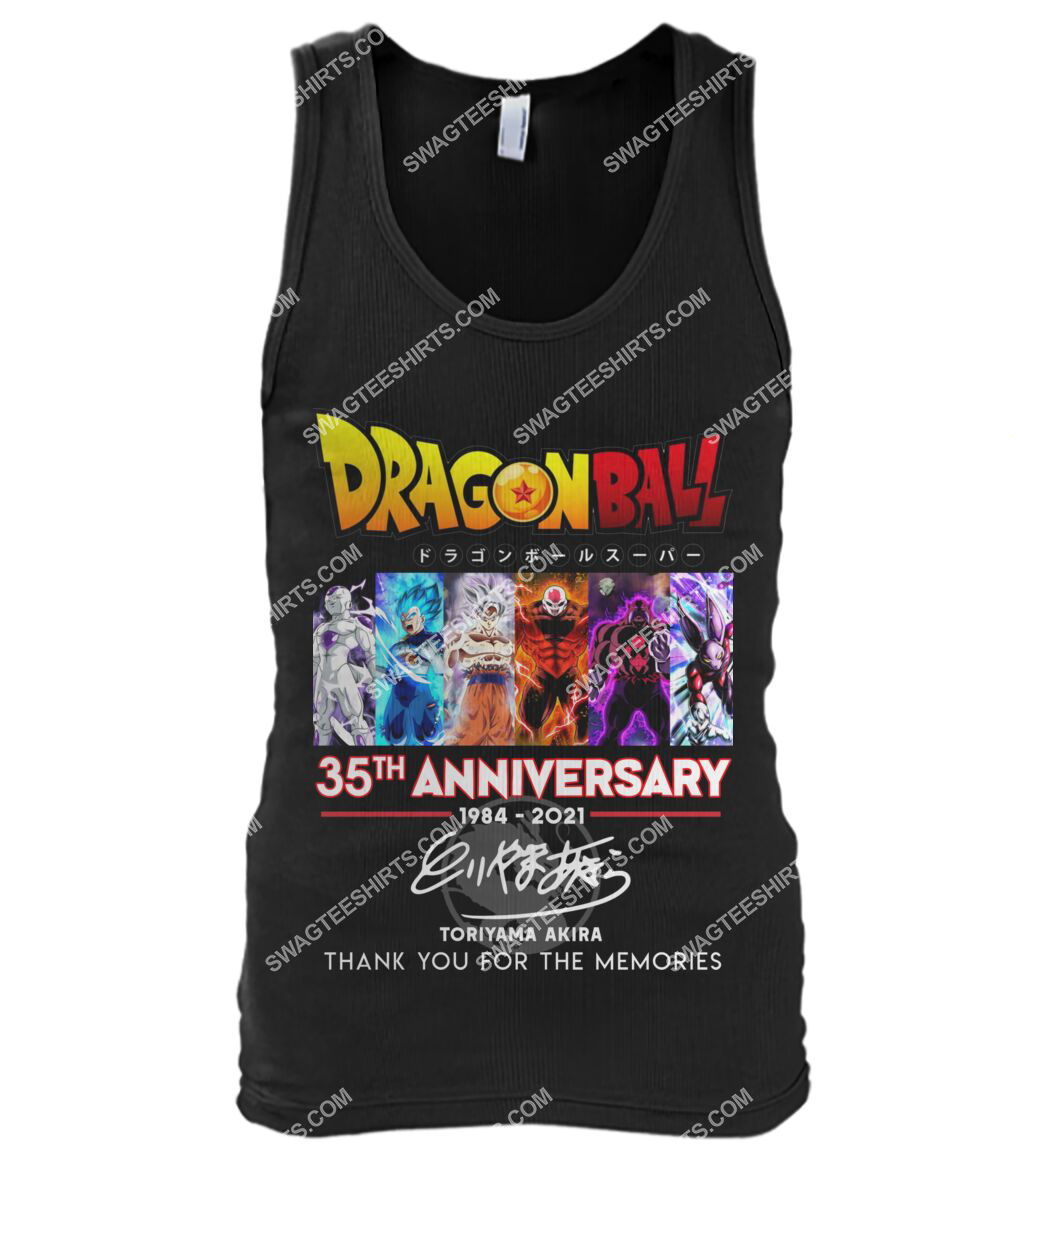 dragon ball z 35th anniversary thank you for memories signatures tank top 1